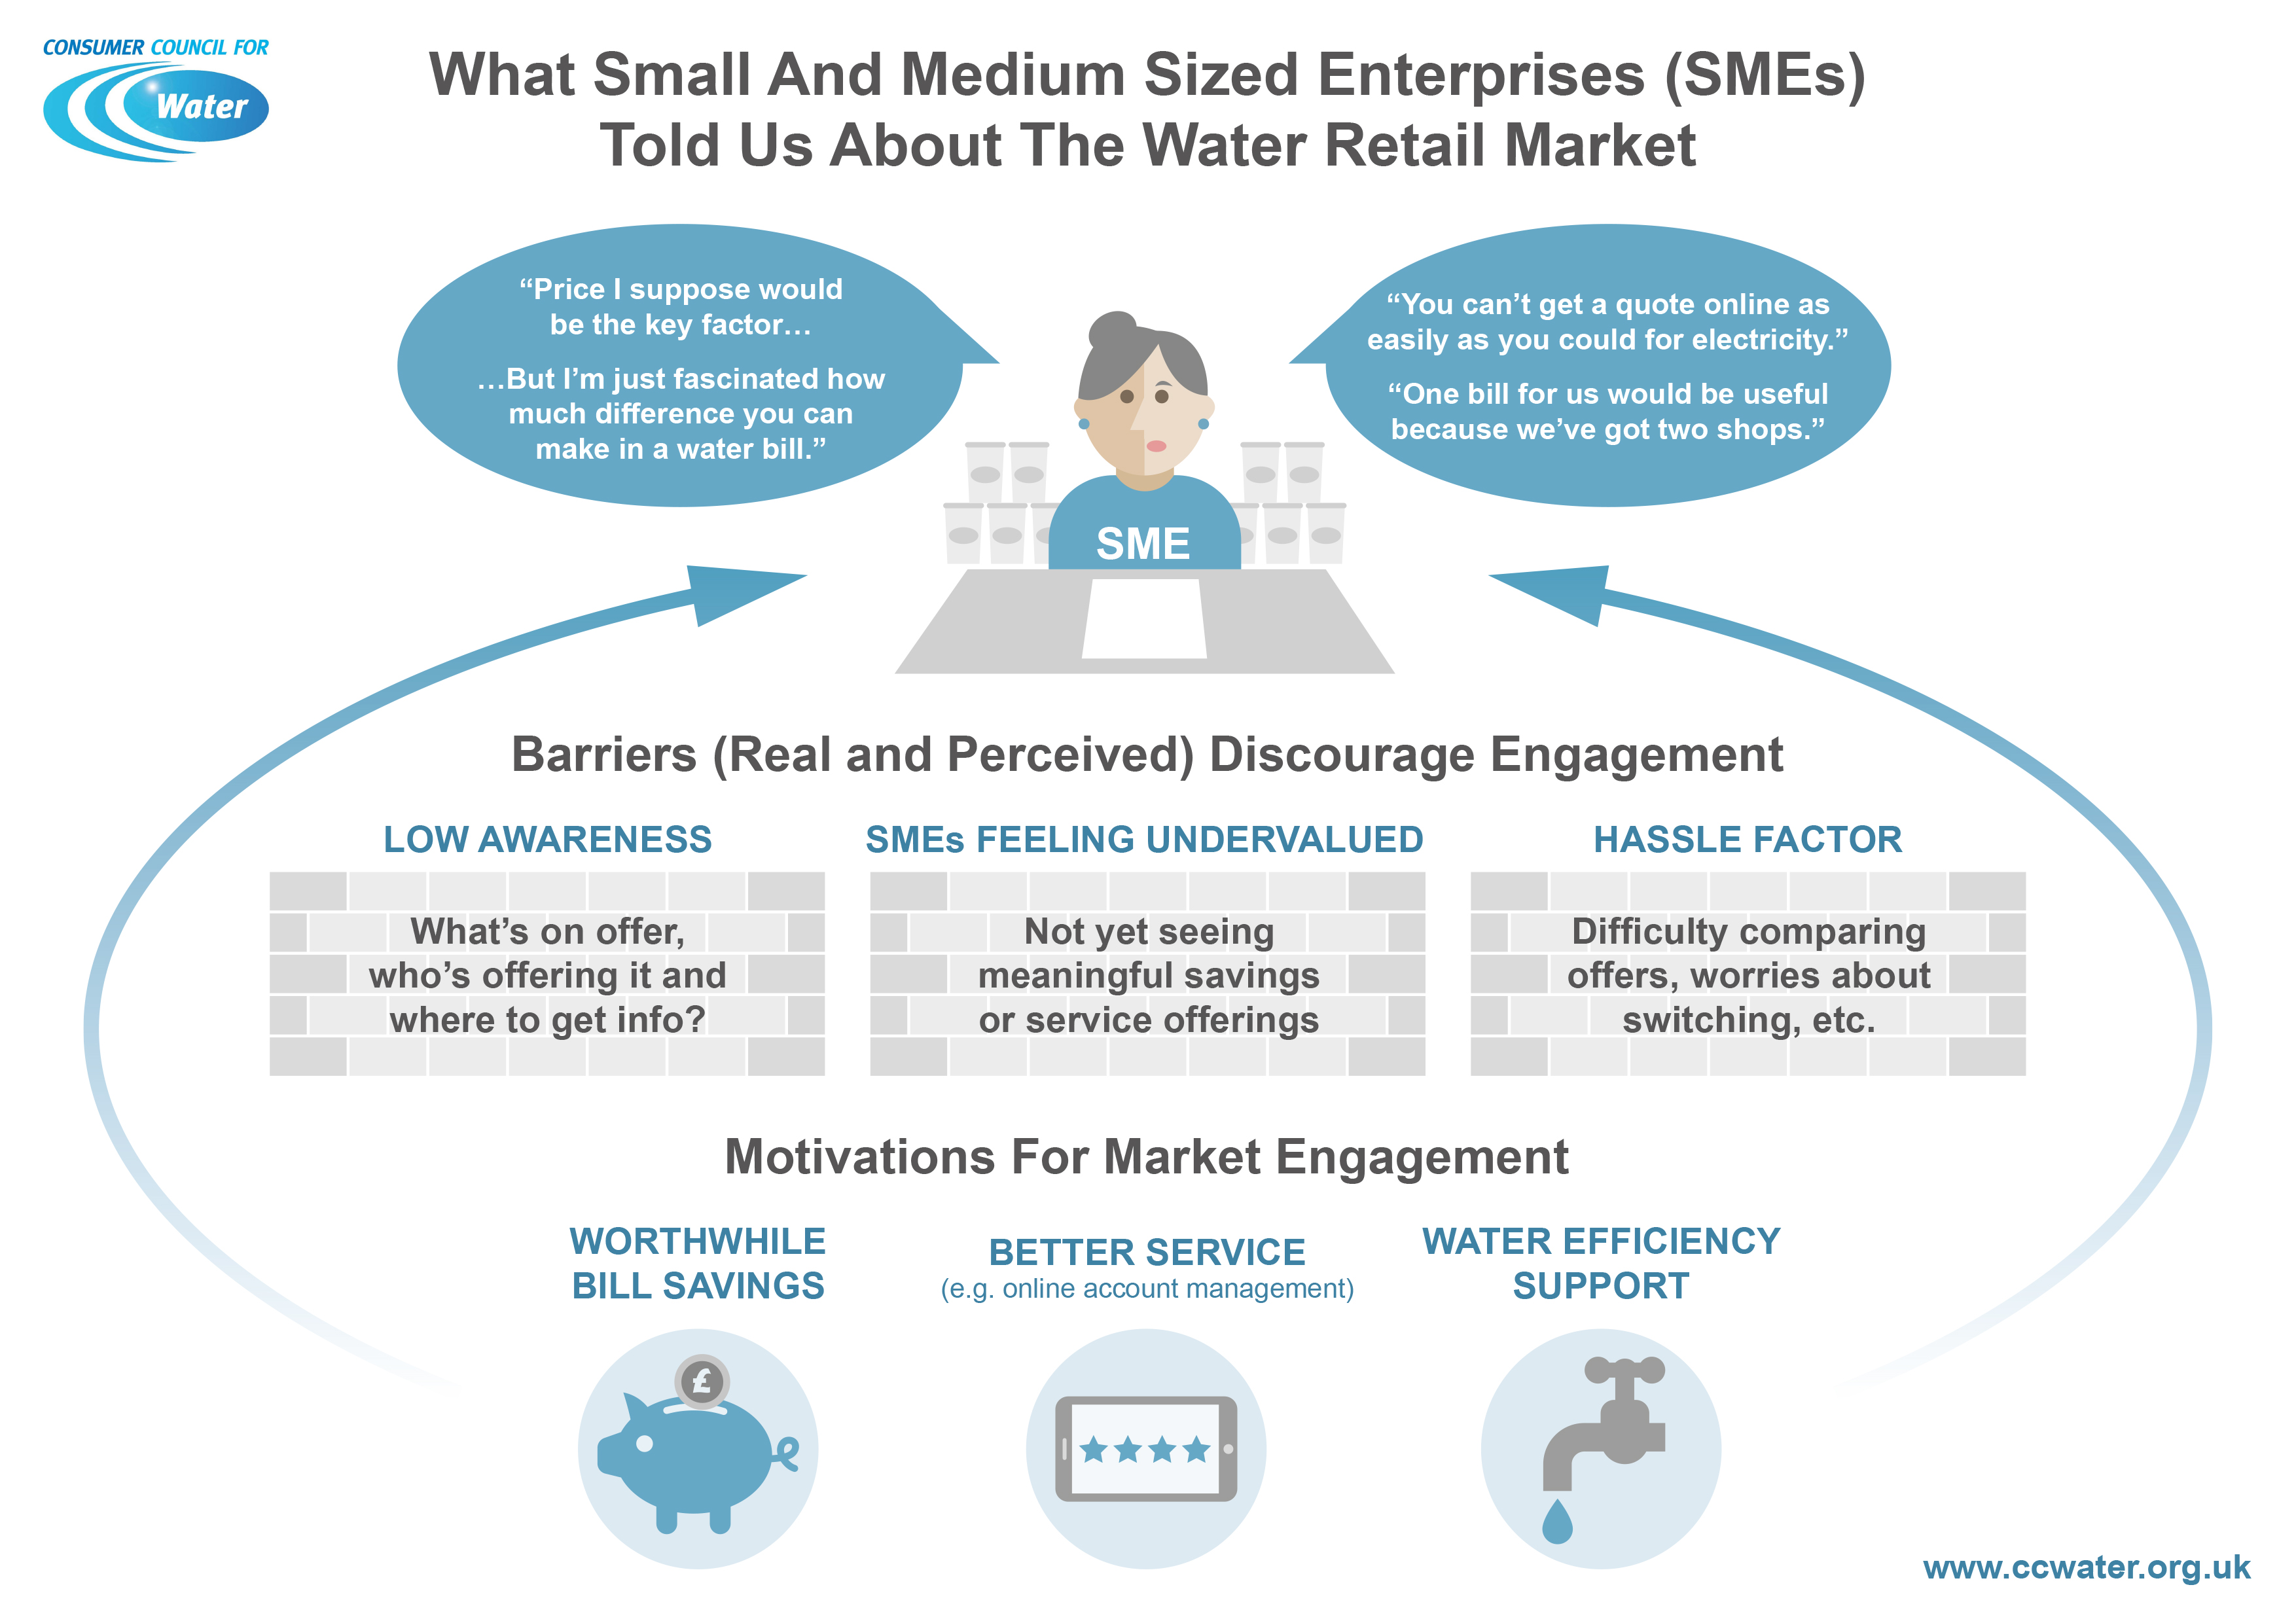 SME told us about the water retail market Infographic